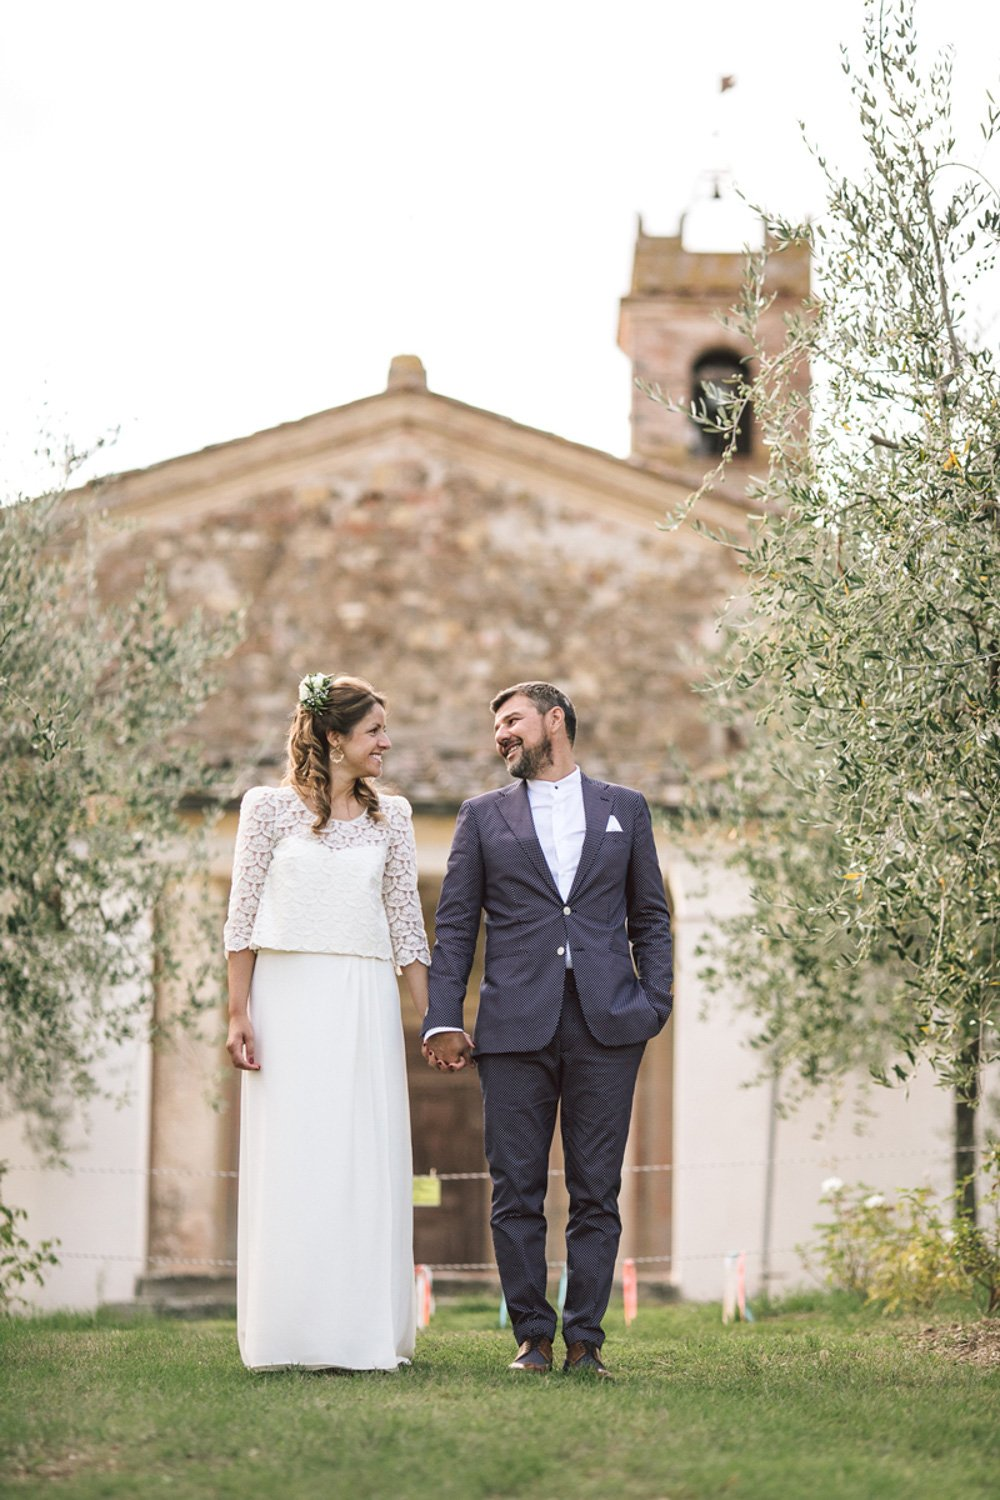 duesudue_wedding_photographer_tuscany-19